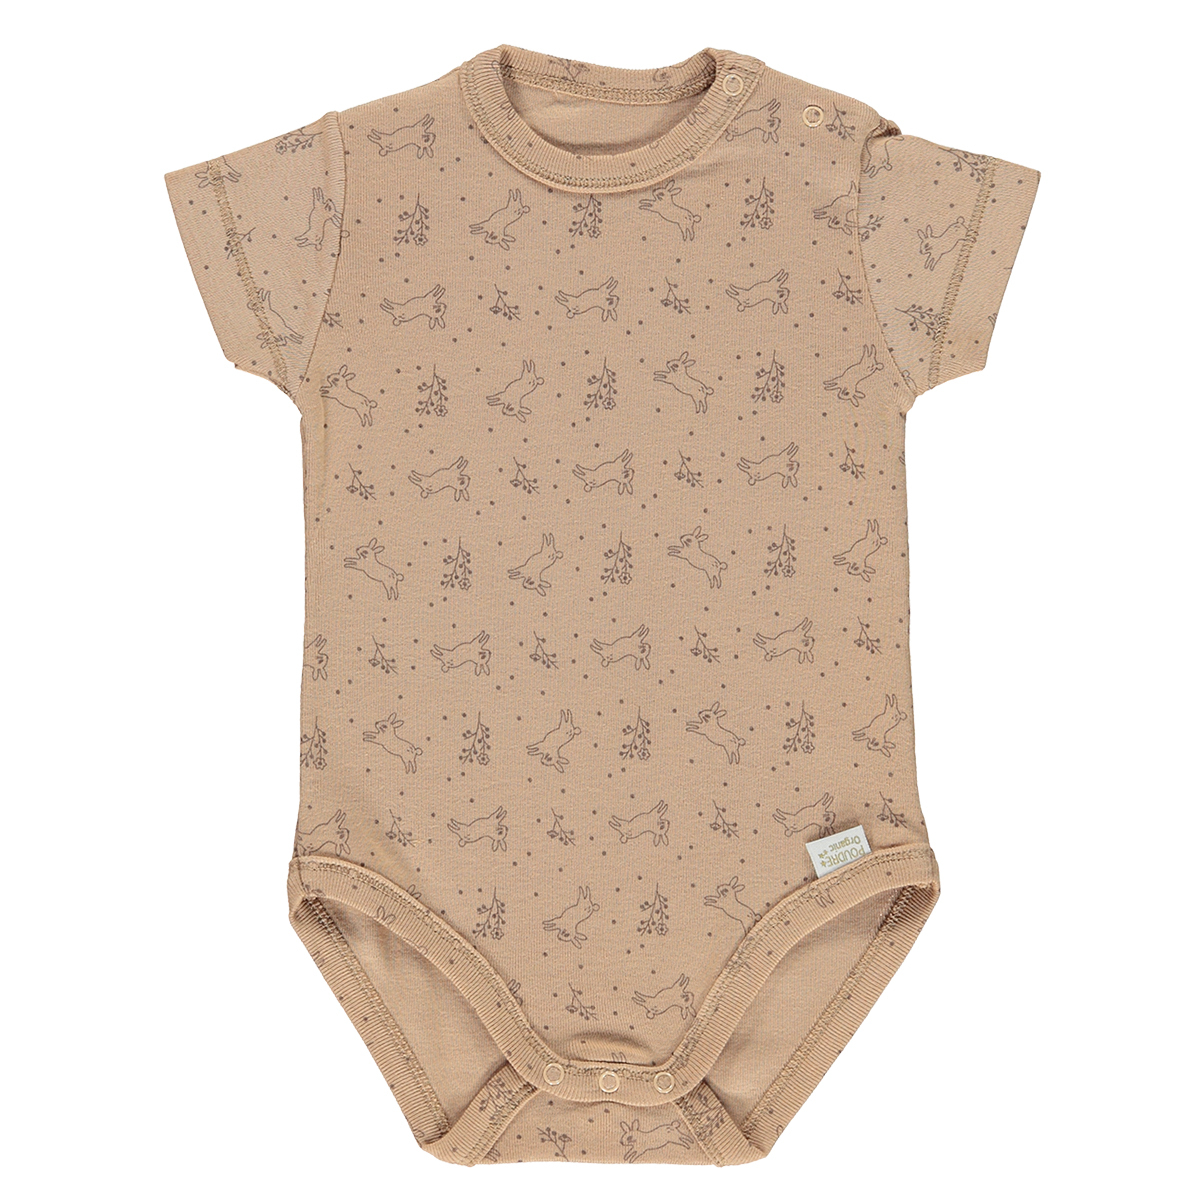 Body & Pyjama Body Manches Courtes Aloes Indian Tan et Motifs - 3 Mois Body Manches Courtes Aloes Indian Tan et Motifs - 3 Mois